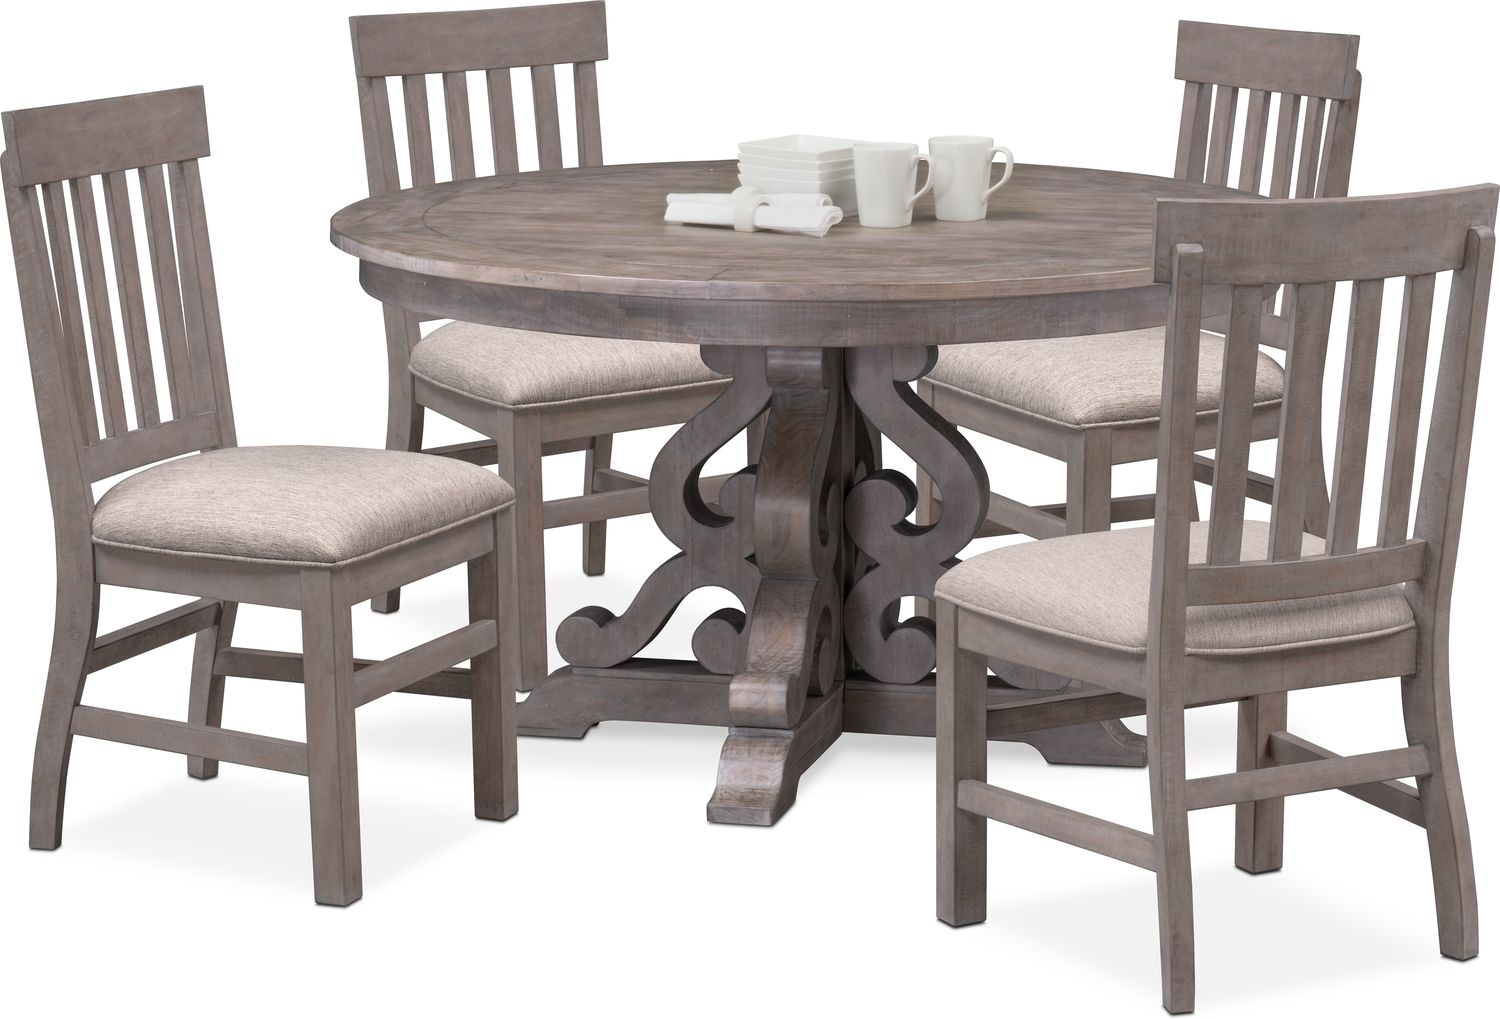 Gray Dining Room Chairs Charthouse Round Dining Table And 4 Side Chairs Gray